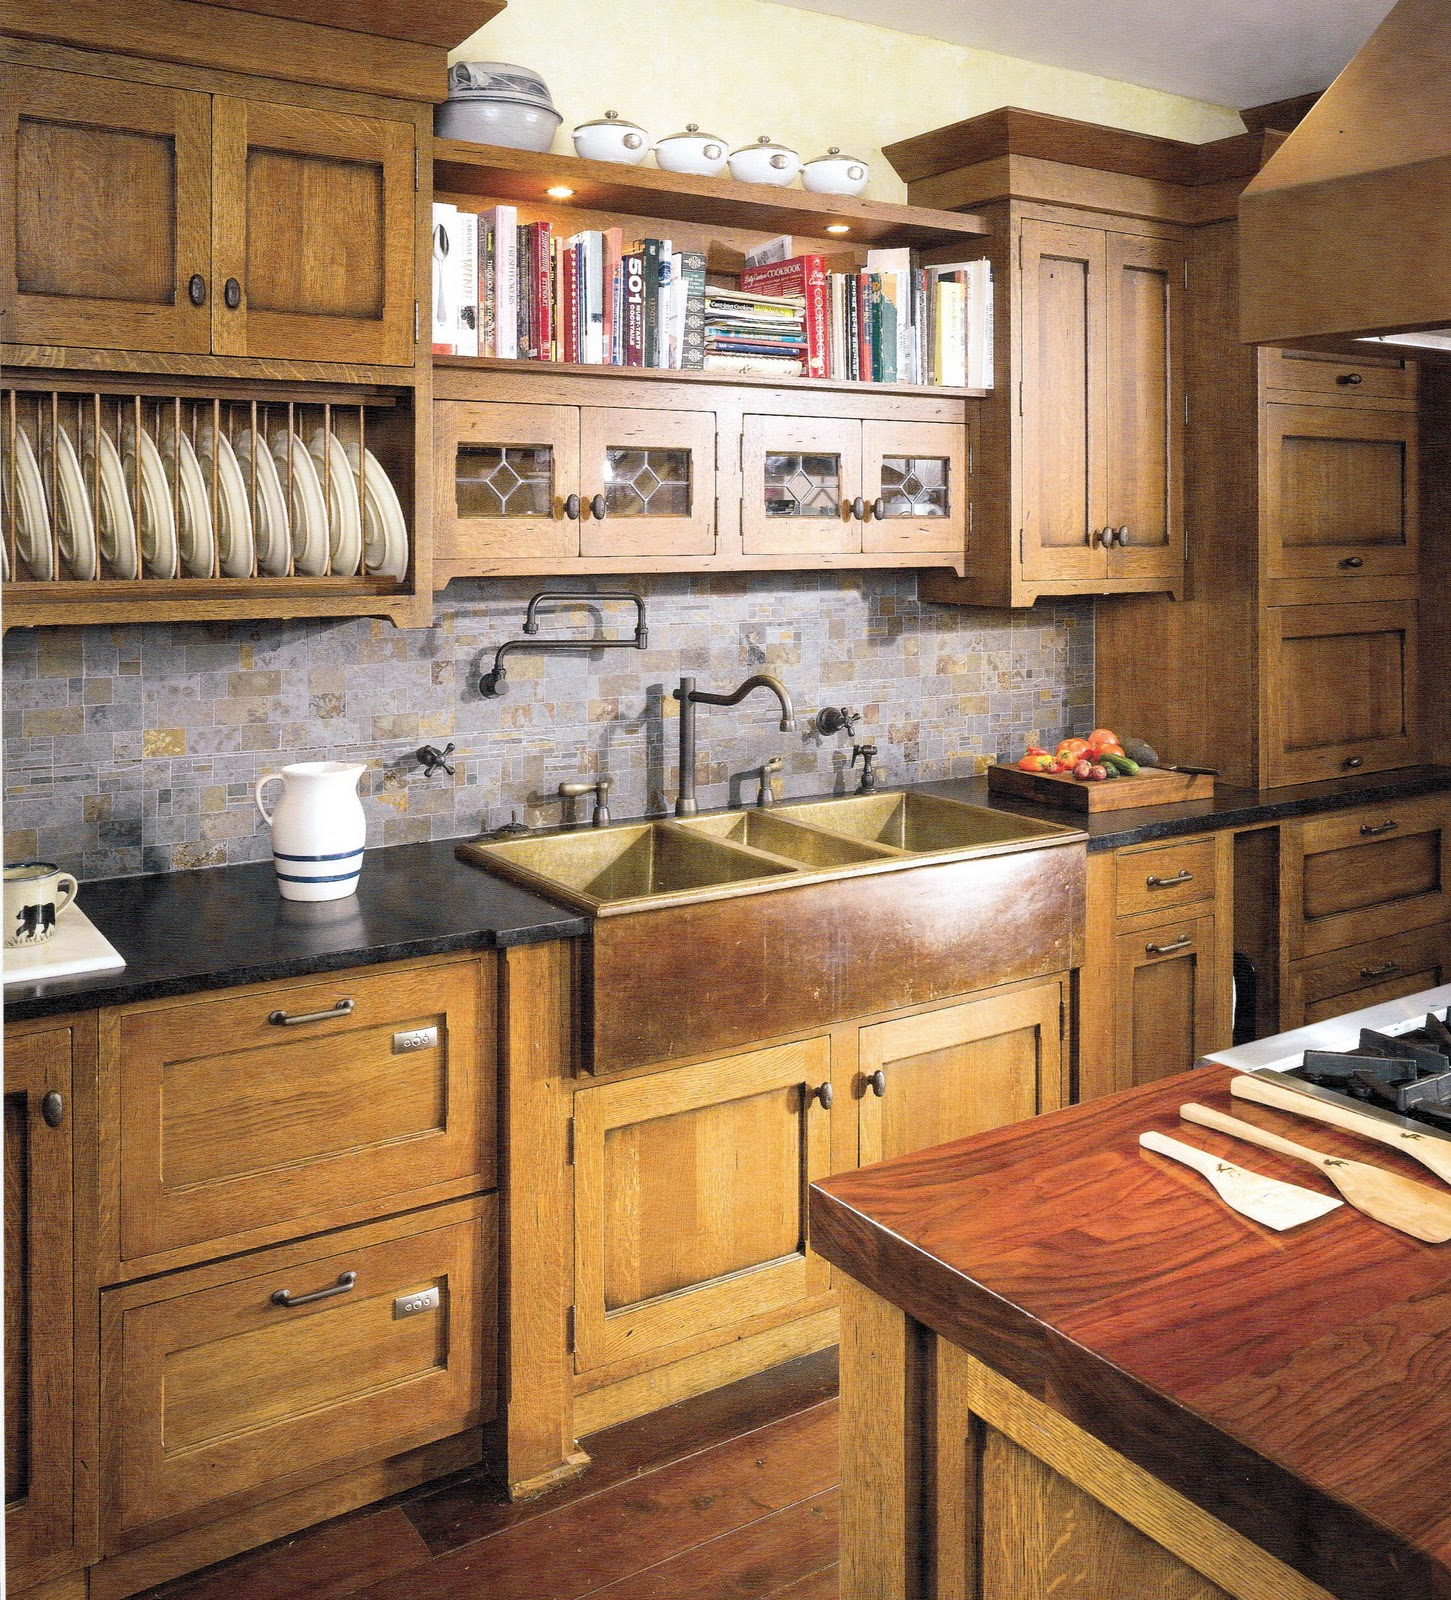 Kitchen Cabinets Mission Style: Craftsman Interiors Kitchen